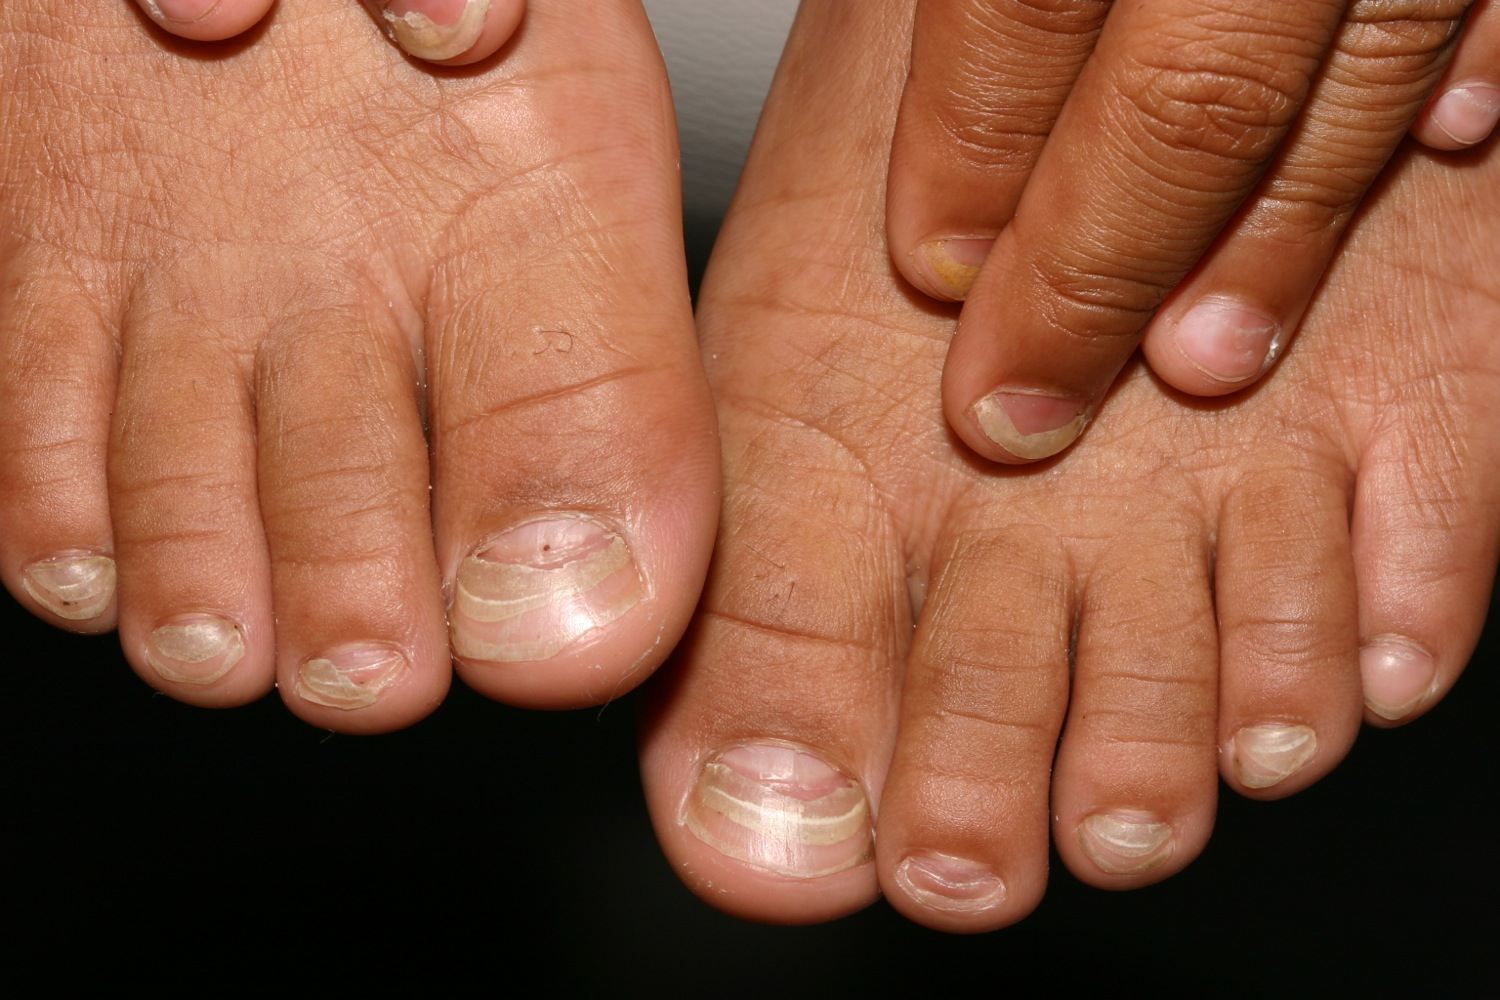 Onychomadesis - Causes, Pictures and Treatment | HealthDiseases.Org